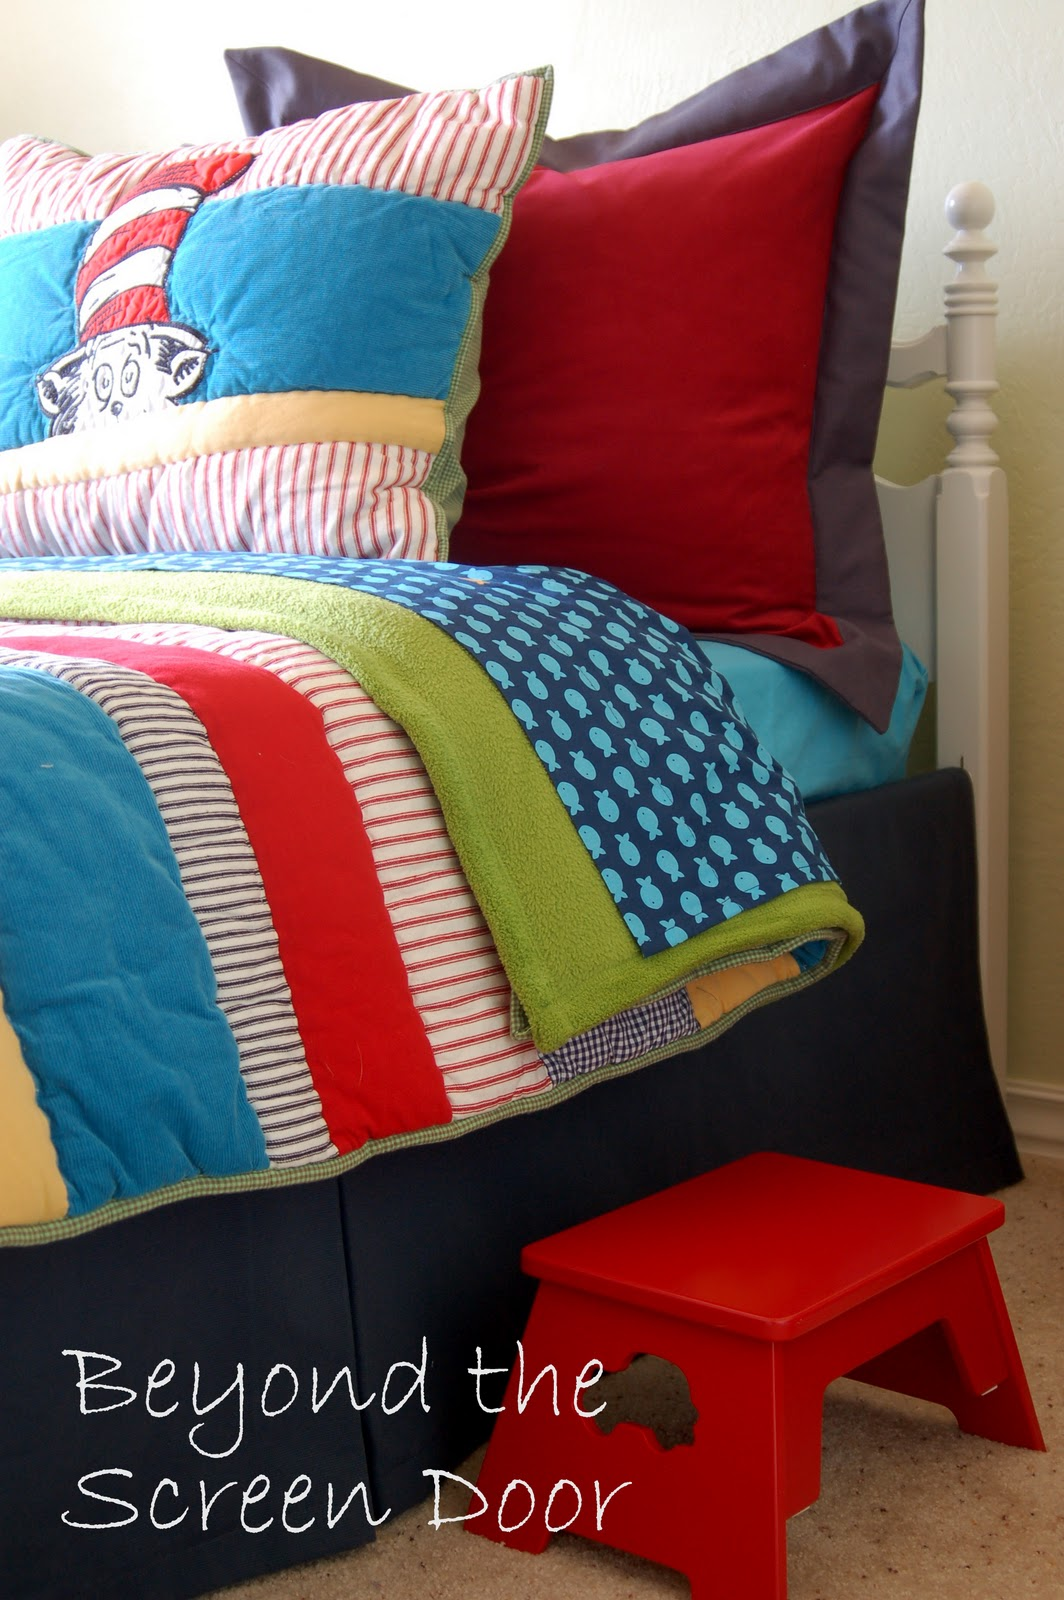 Judy found an adorable line of Cat in the Hat bedding from Pottery Barn  Kids that she fell in love with. Mixing Custom and Ready Made in a Guest Room   Sonya Hamilton Designs